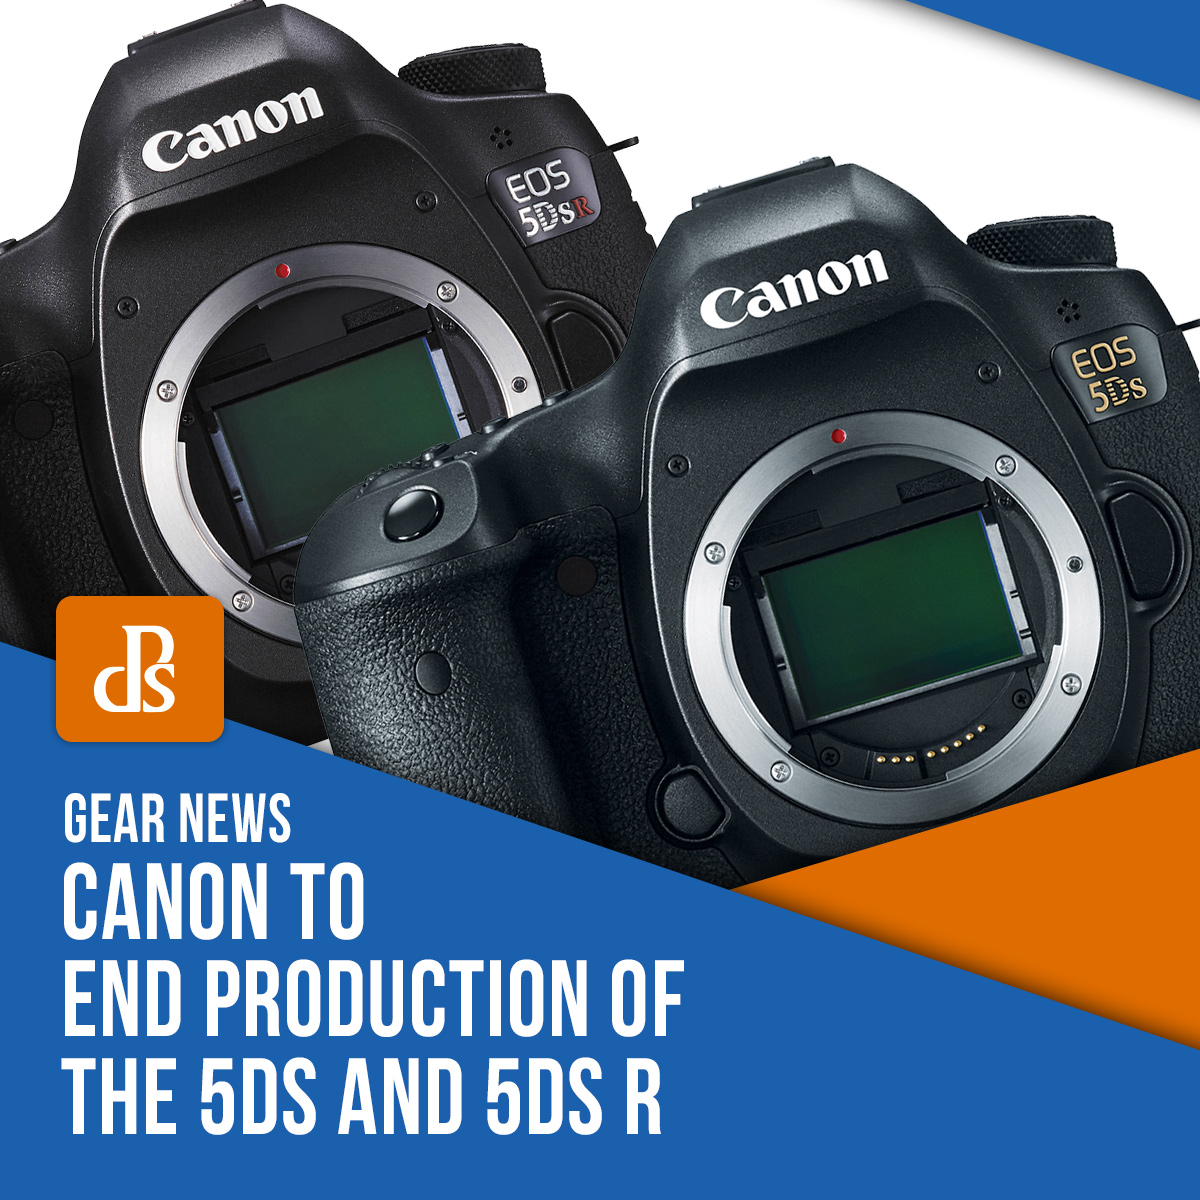 Canon to End Production of the 5DS and 5DS R featured image